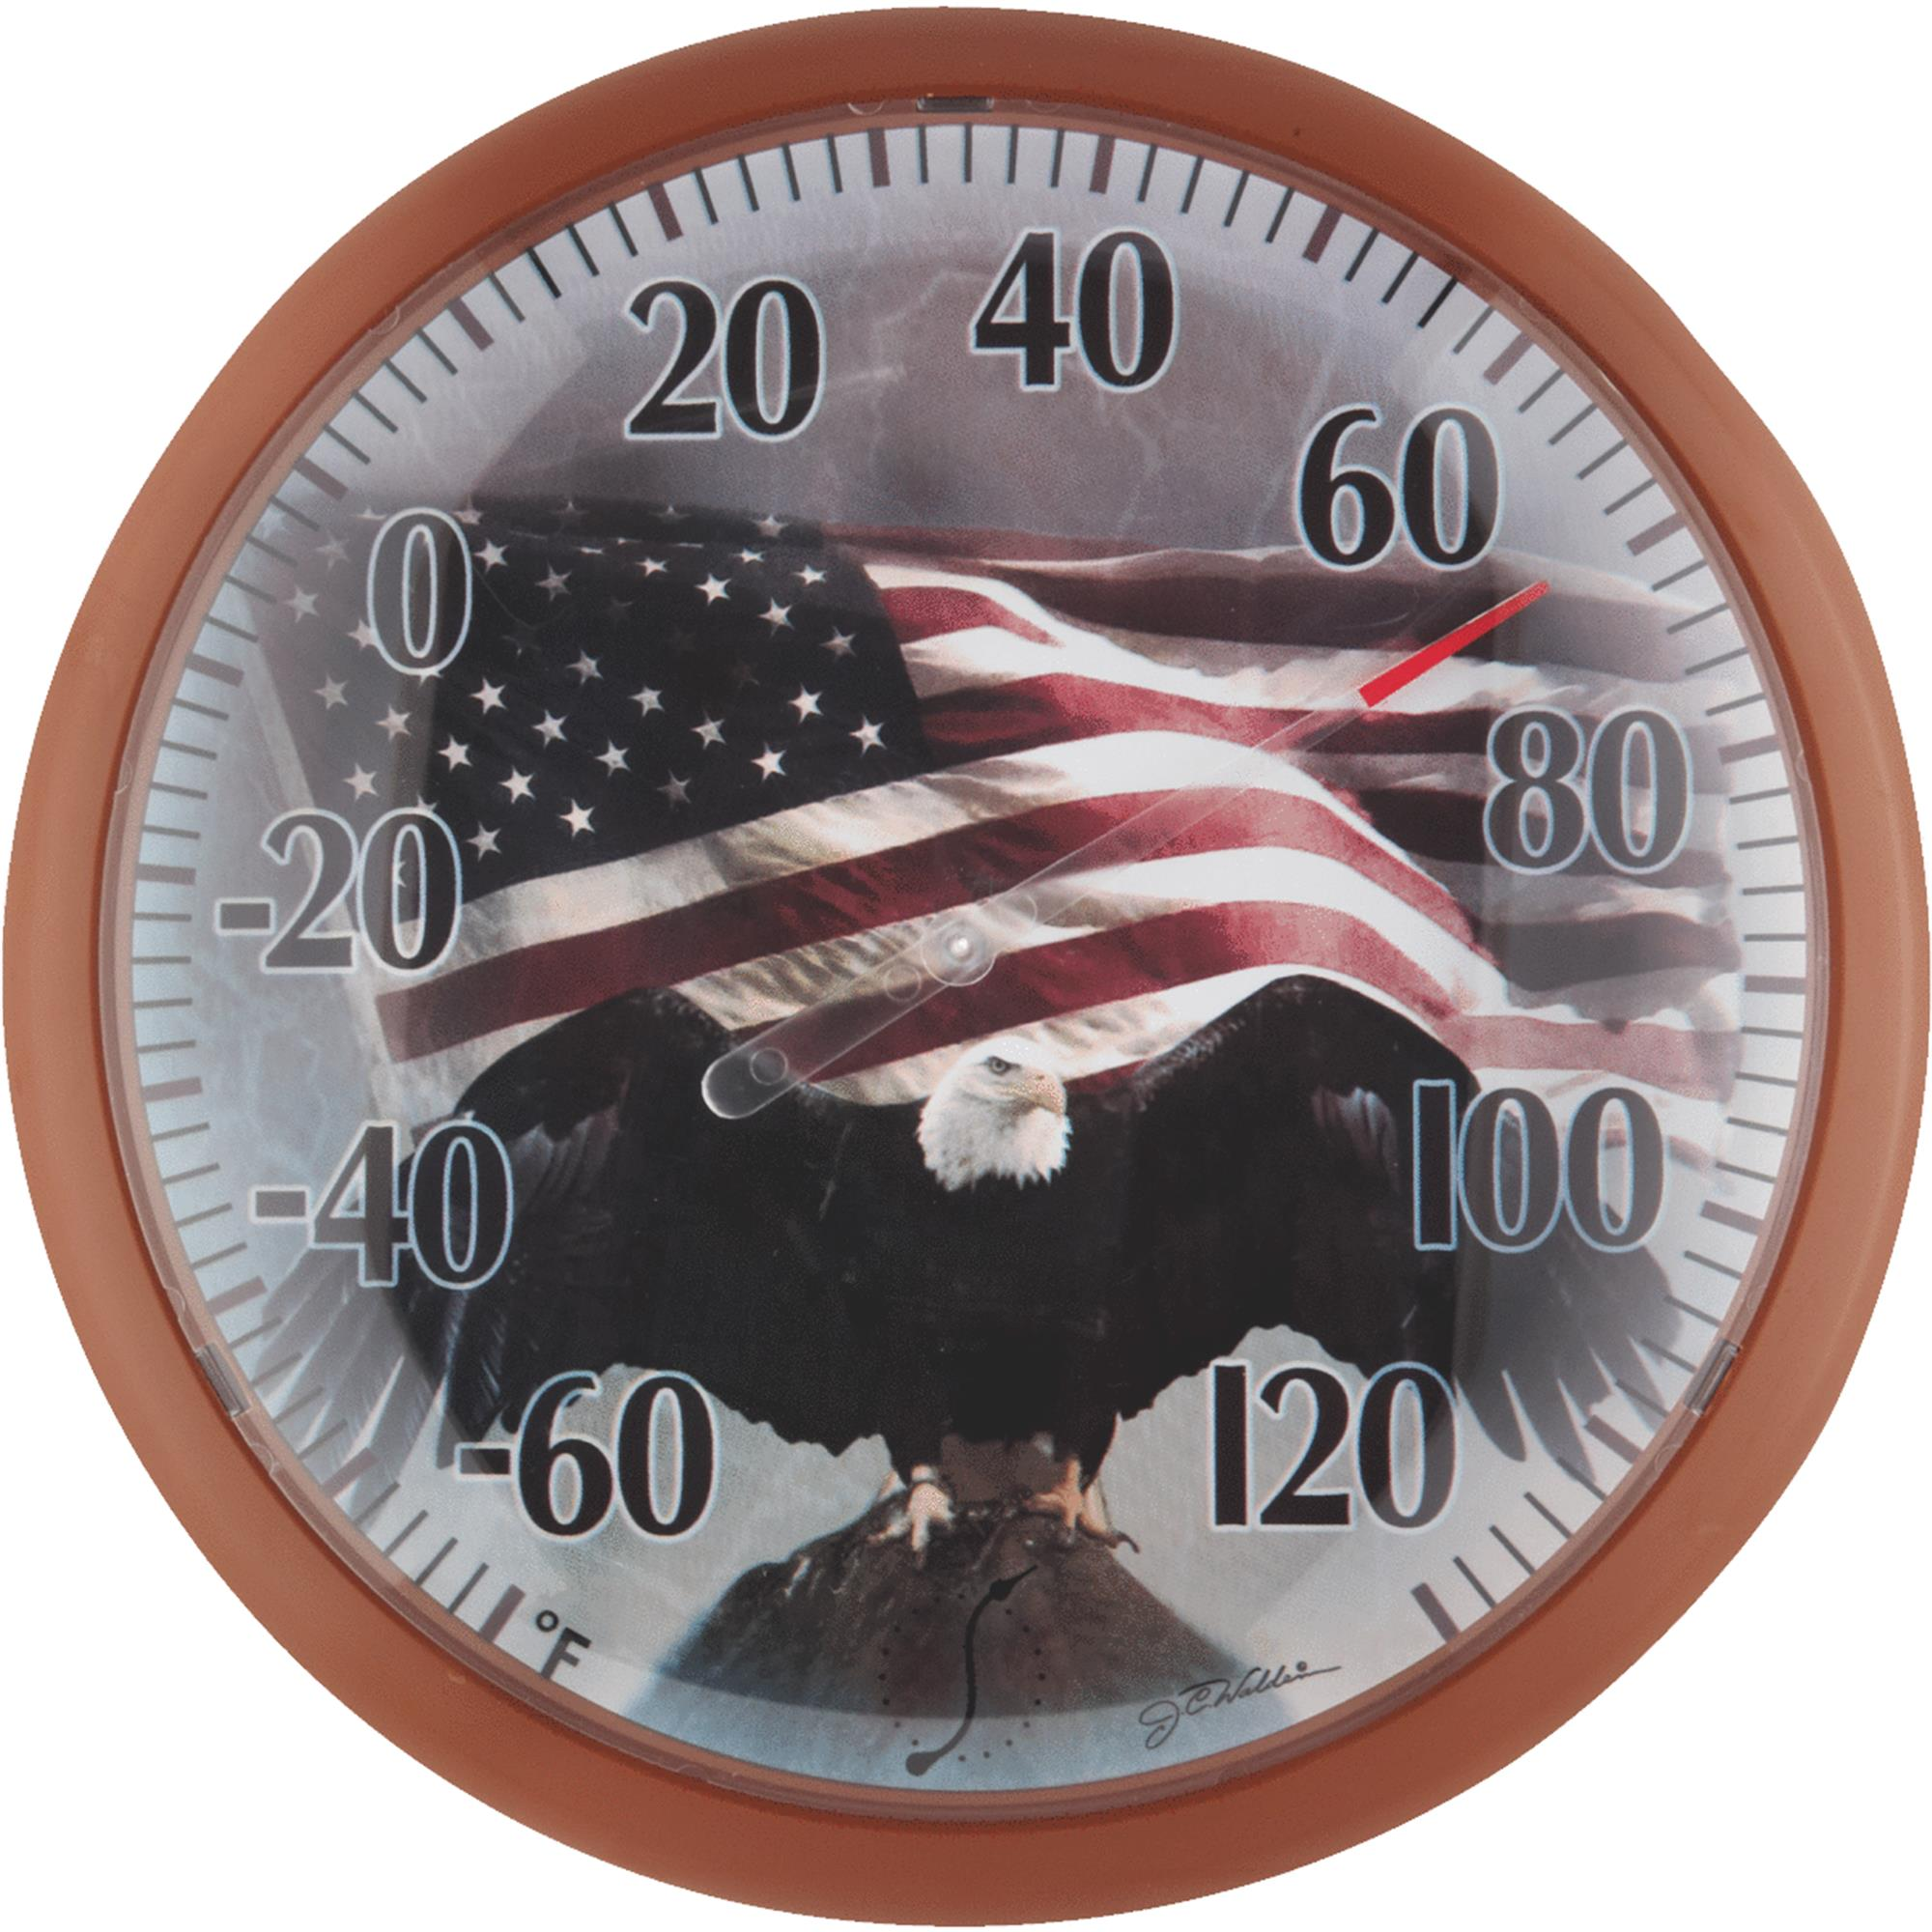 13-Inch Bald Eagle Outdoor Thermometer by Taylor Precision